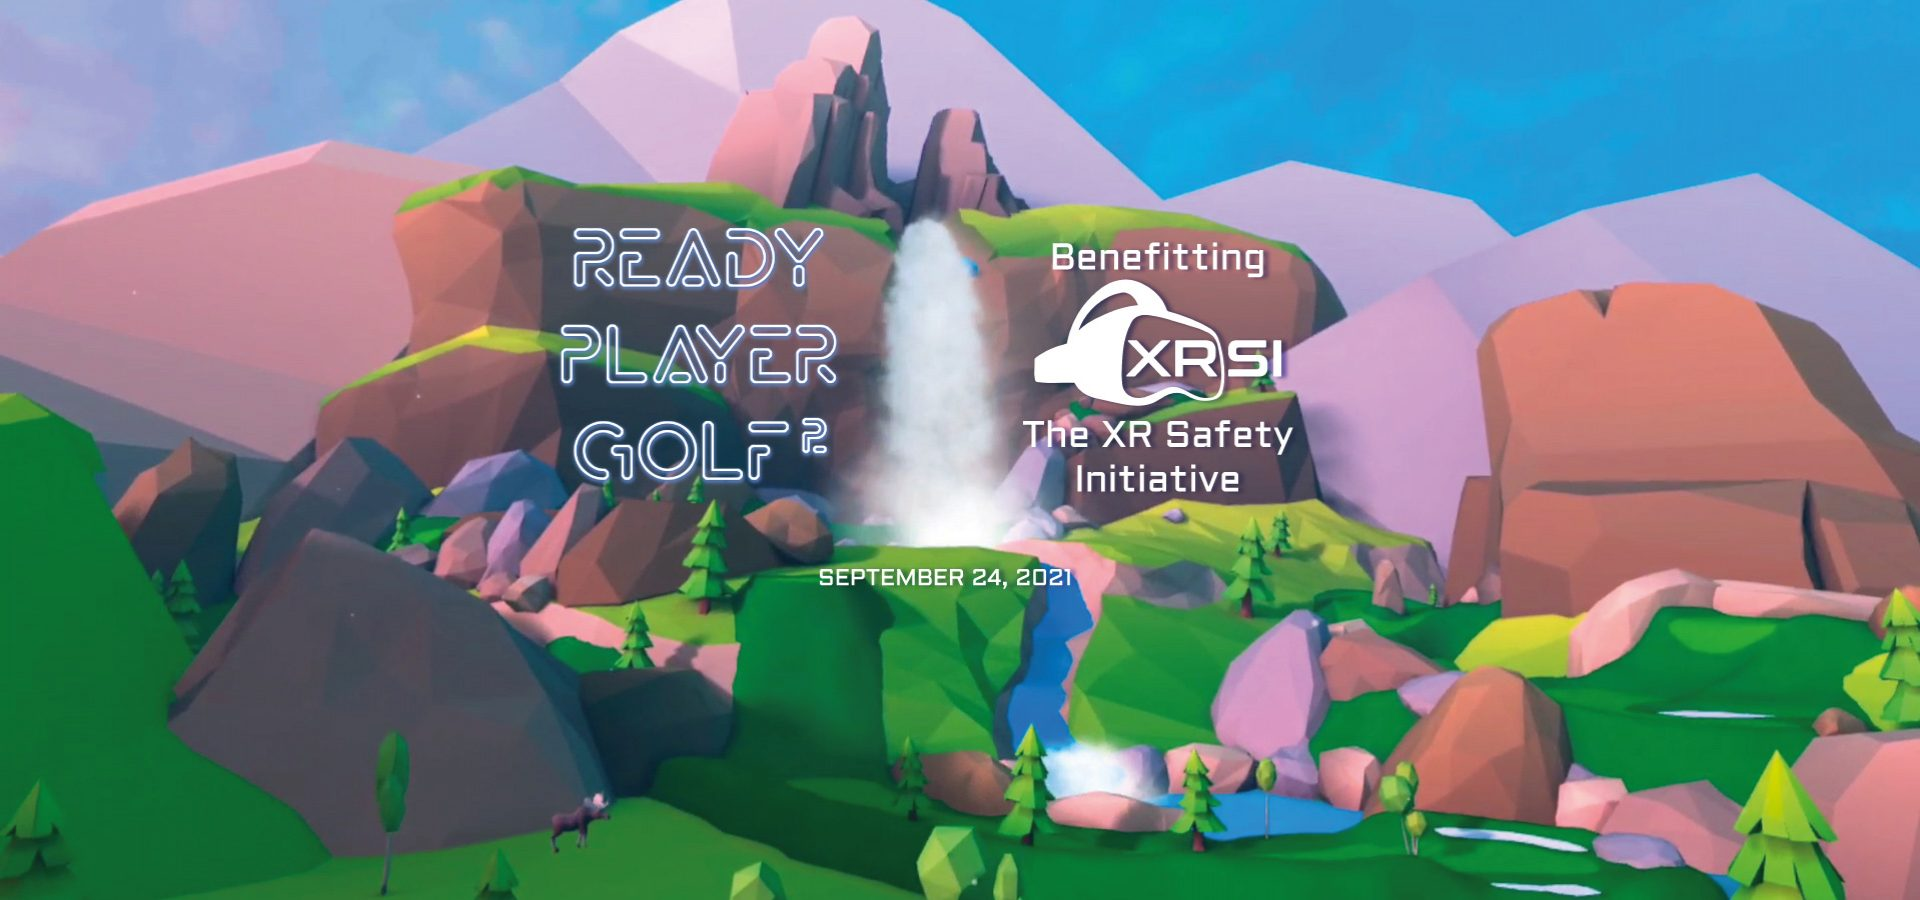 Ready Player Golf VR Tournament on Oculus Quest to Benefit XRSI